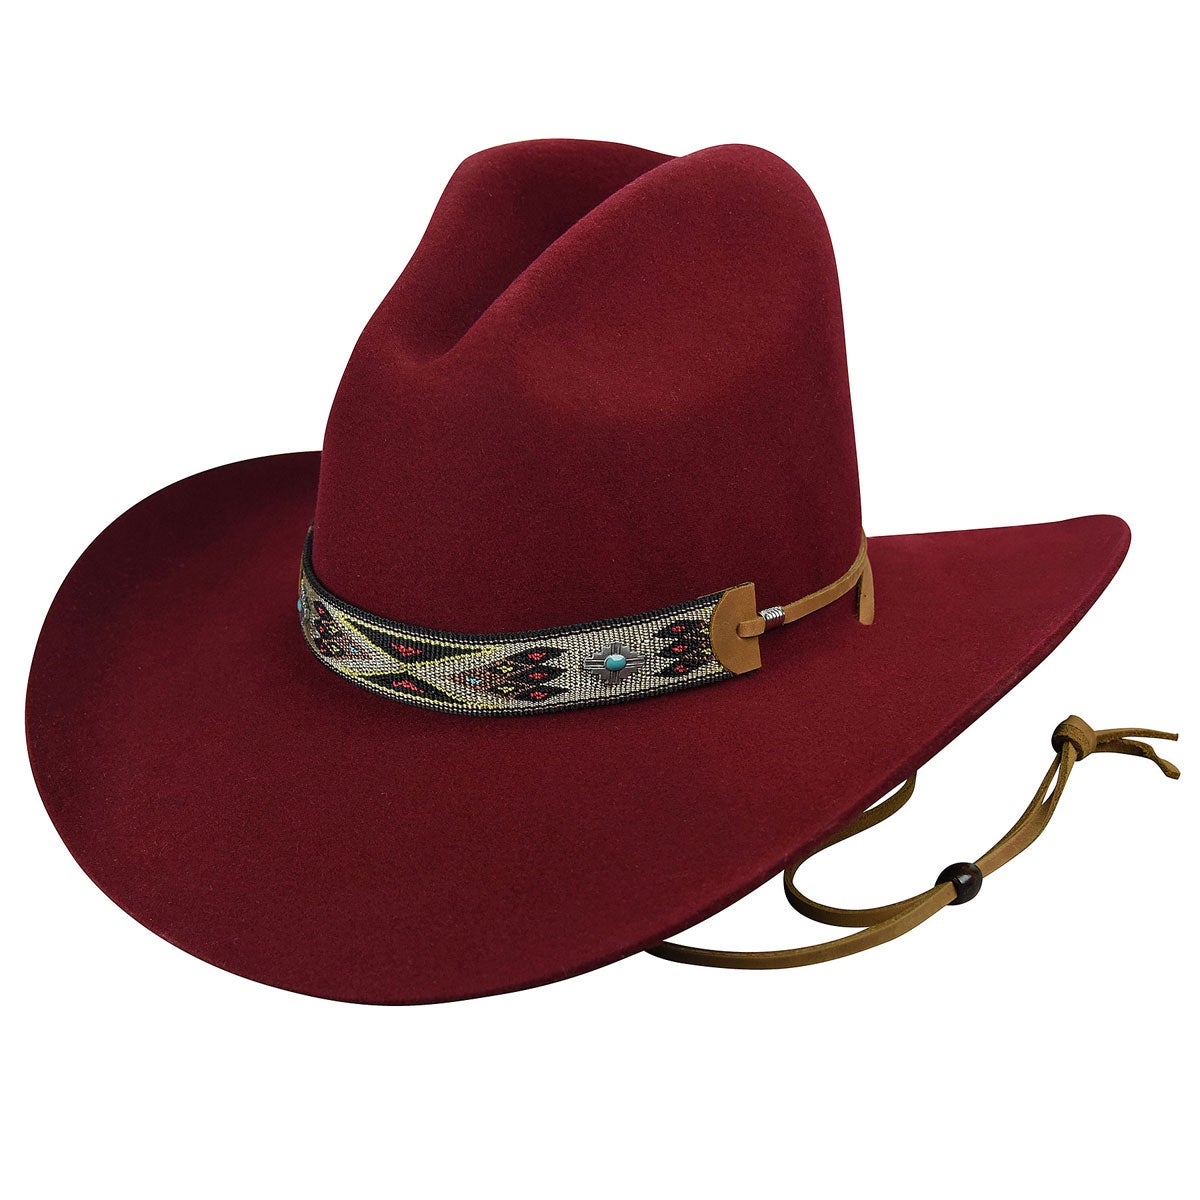 Vintage Western Wear Clothing, Outfit Ideas Renegade by BaileyHickstead Western Hat - Cranberry7 14 $110.00 AT vintagedancer.com